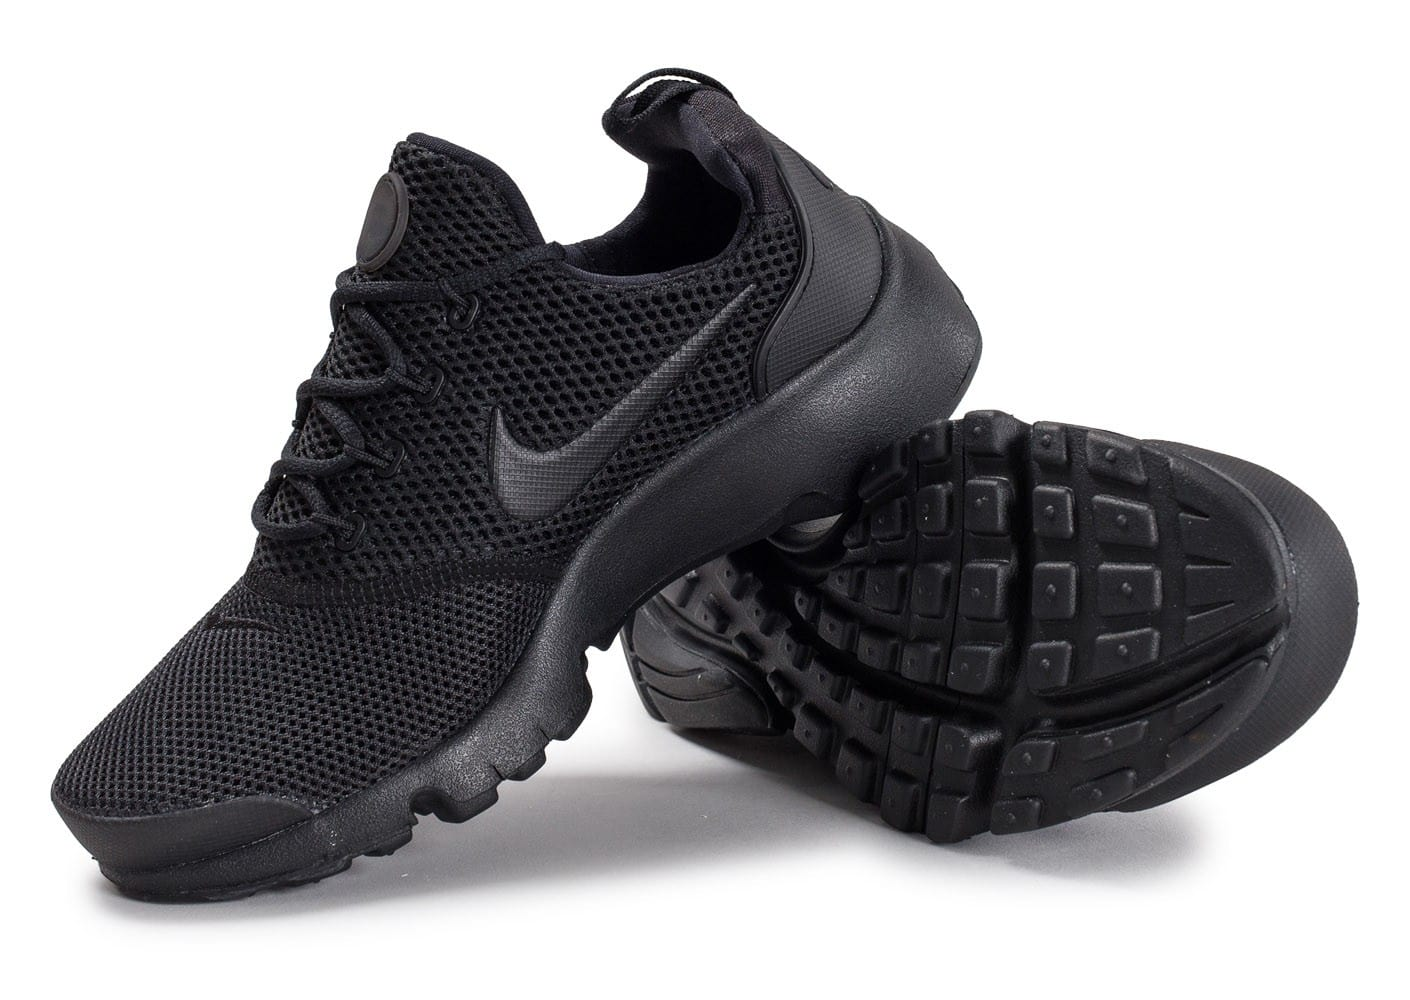 info for 3f858 9b5a9 Chaussures Nike Presto Fly Junior triple noir vue avant ...